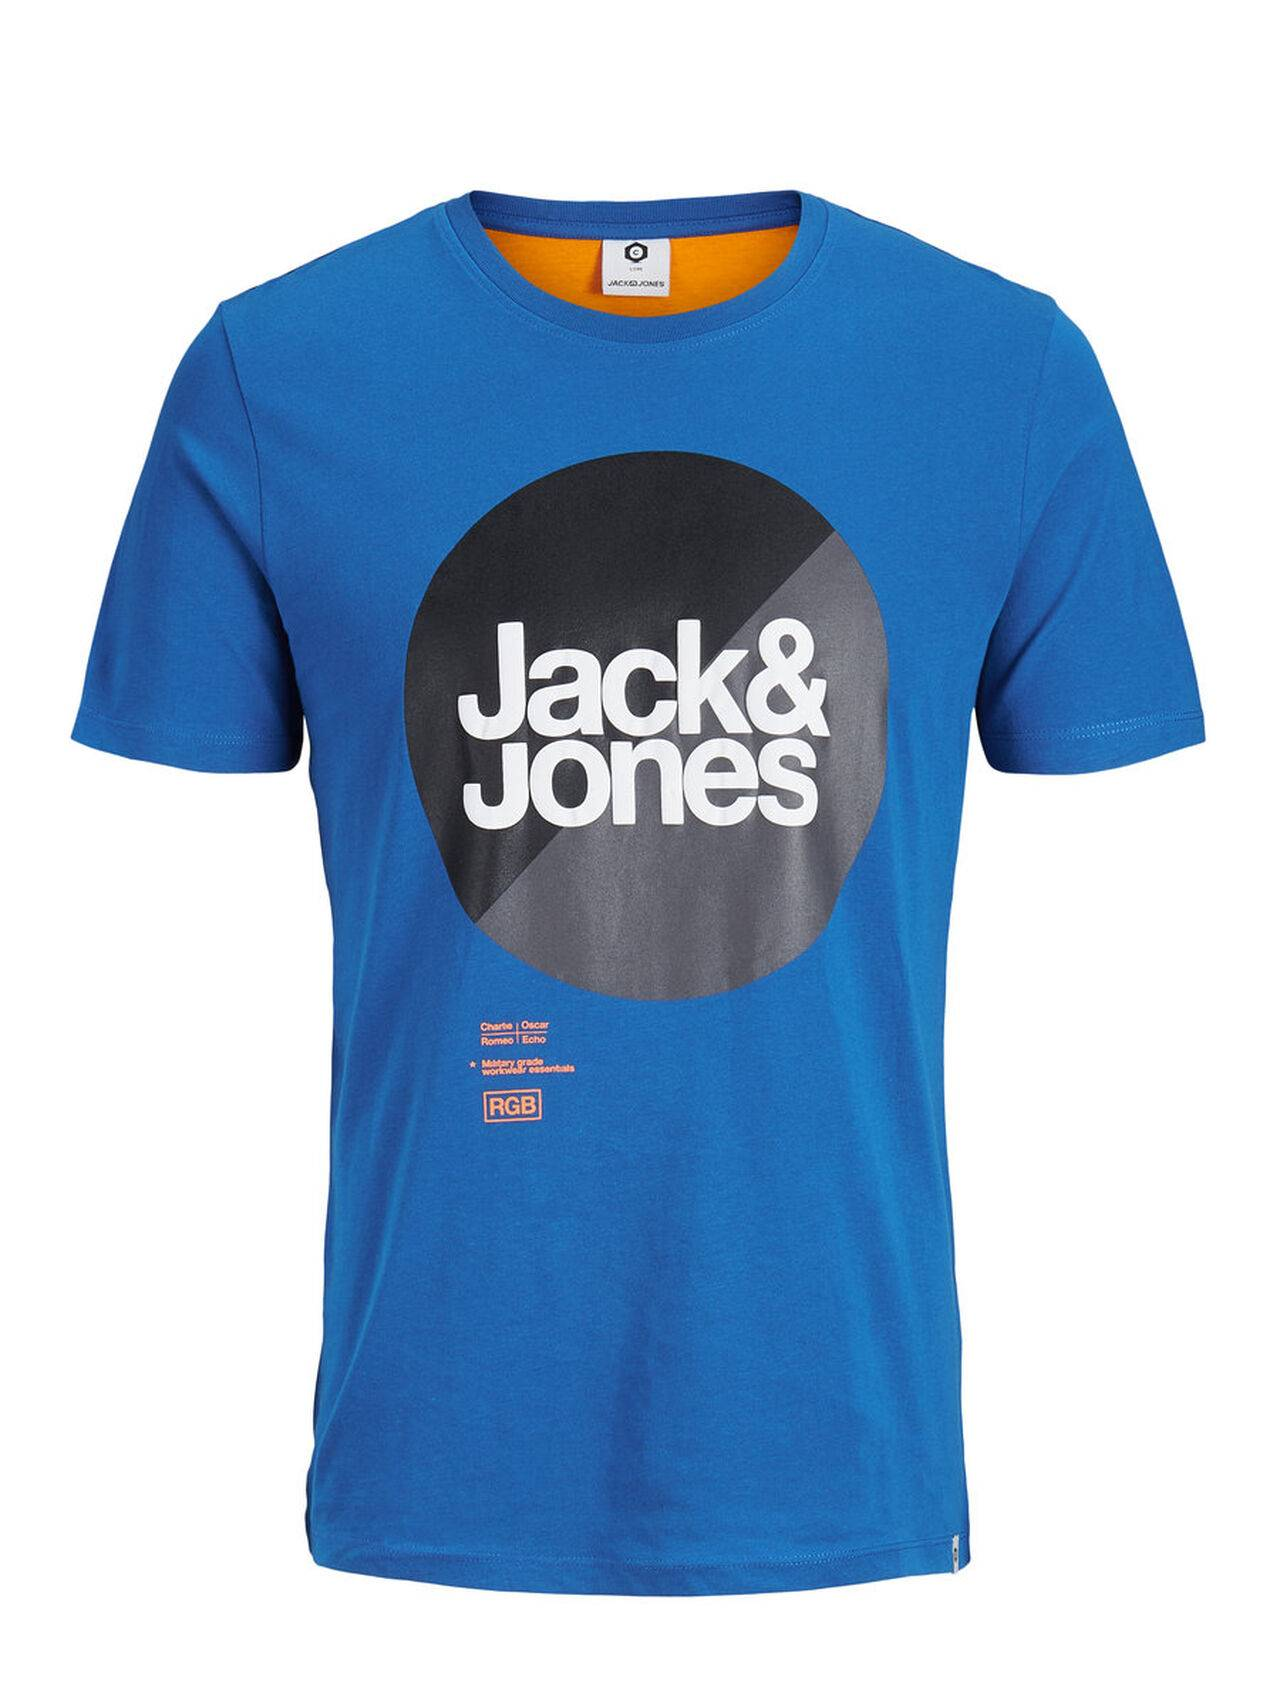 JACK & JONES Graphic T-shirt Men Blue ClassicBlue